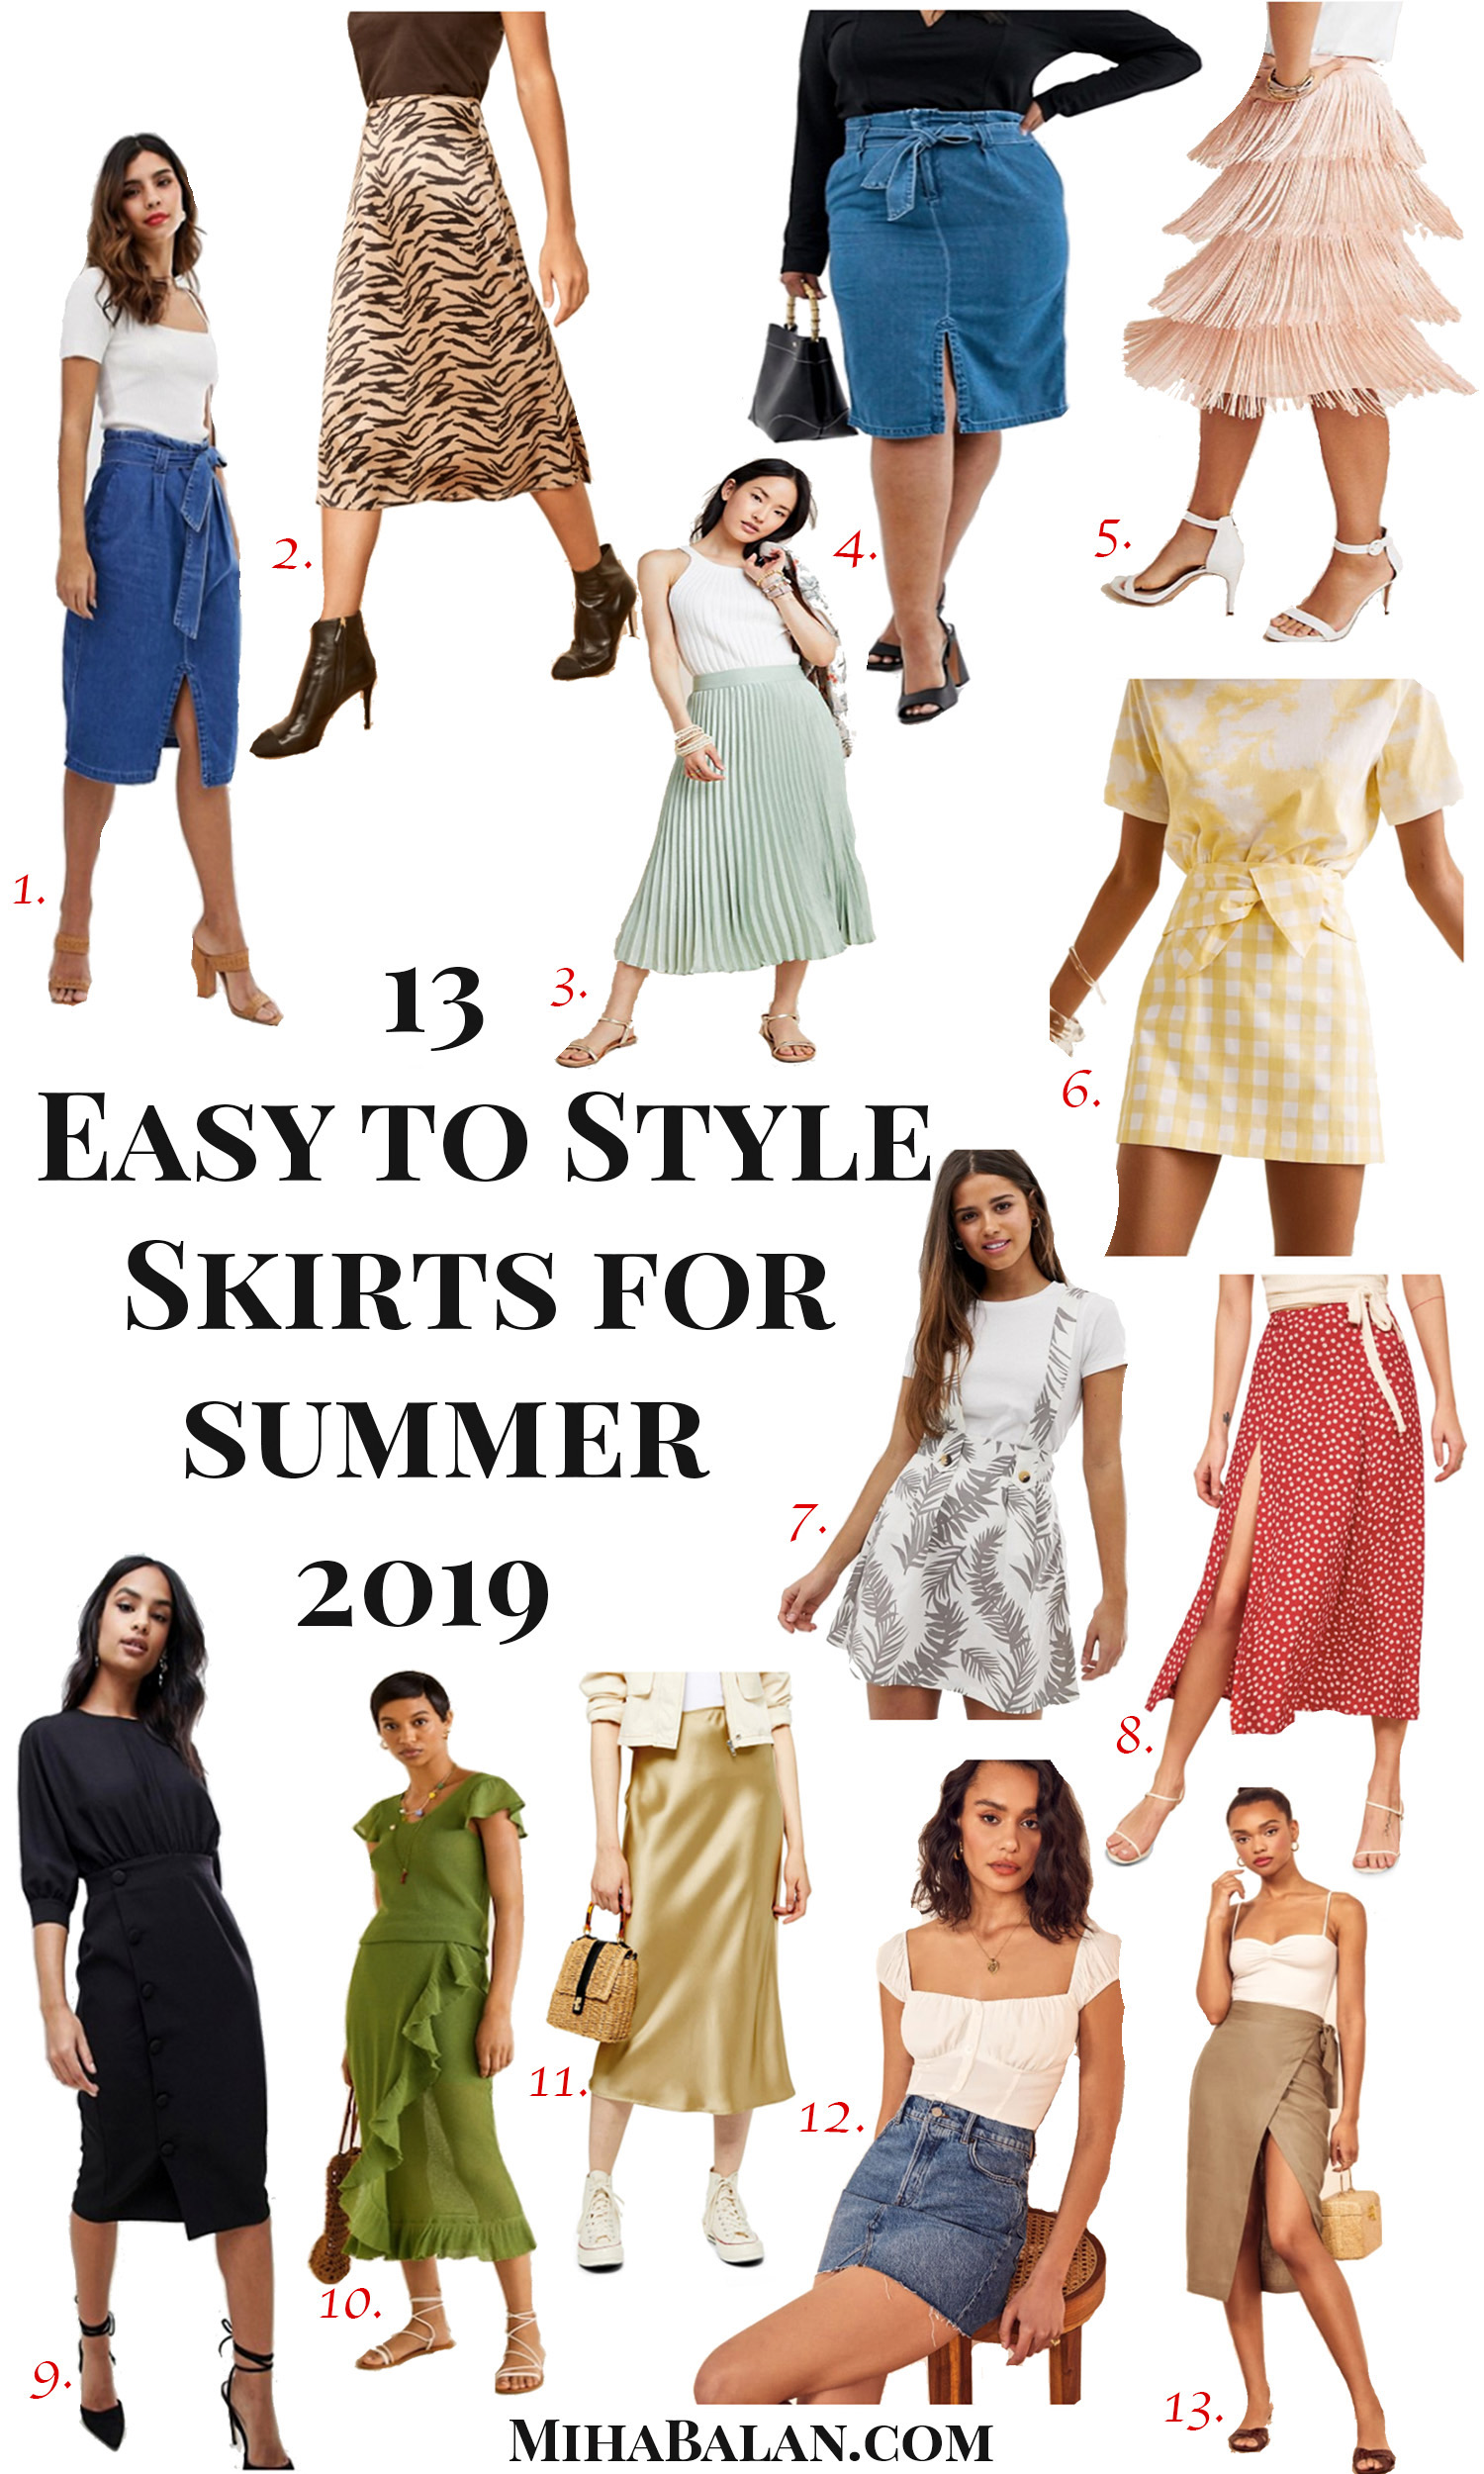 Easy to style summer skirts 2019, midi skirts, maxi skirts, floral skirts, work wear skirts, denim skirts